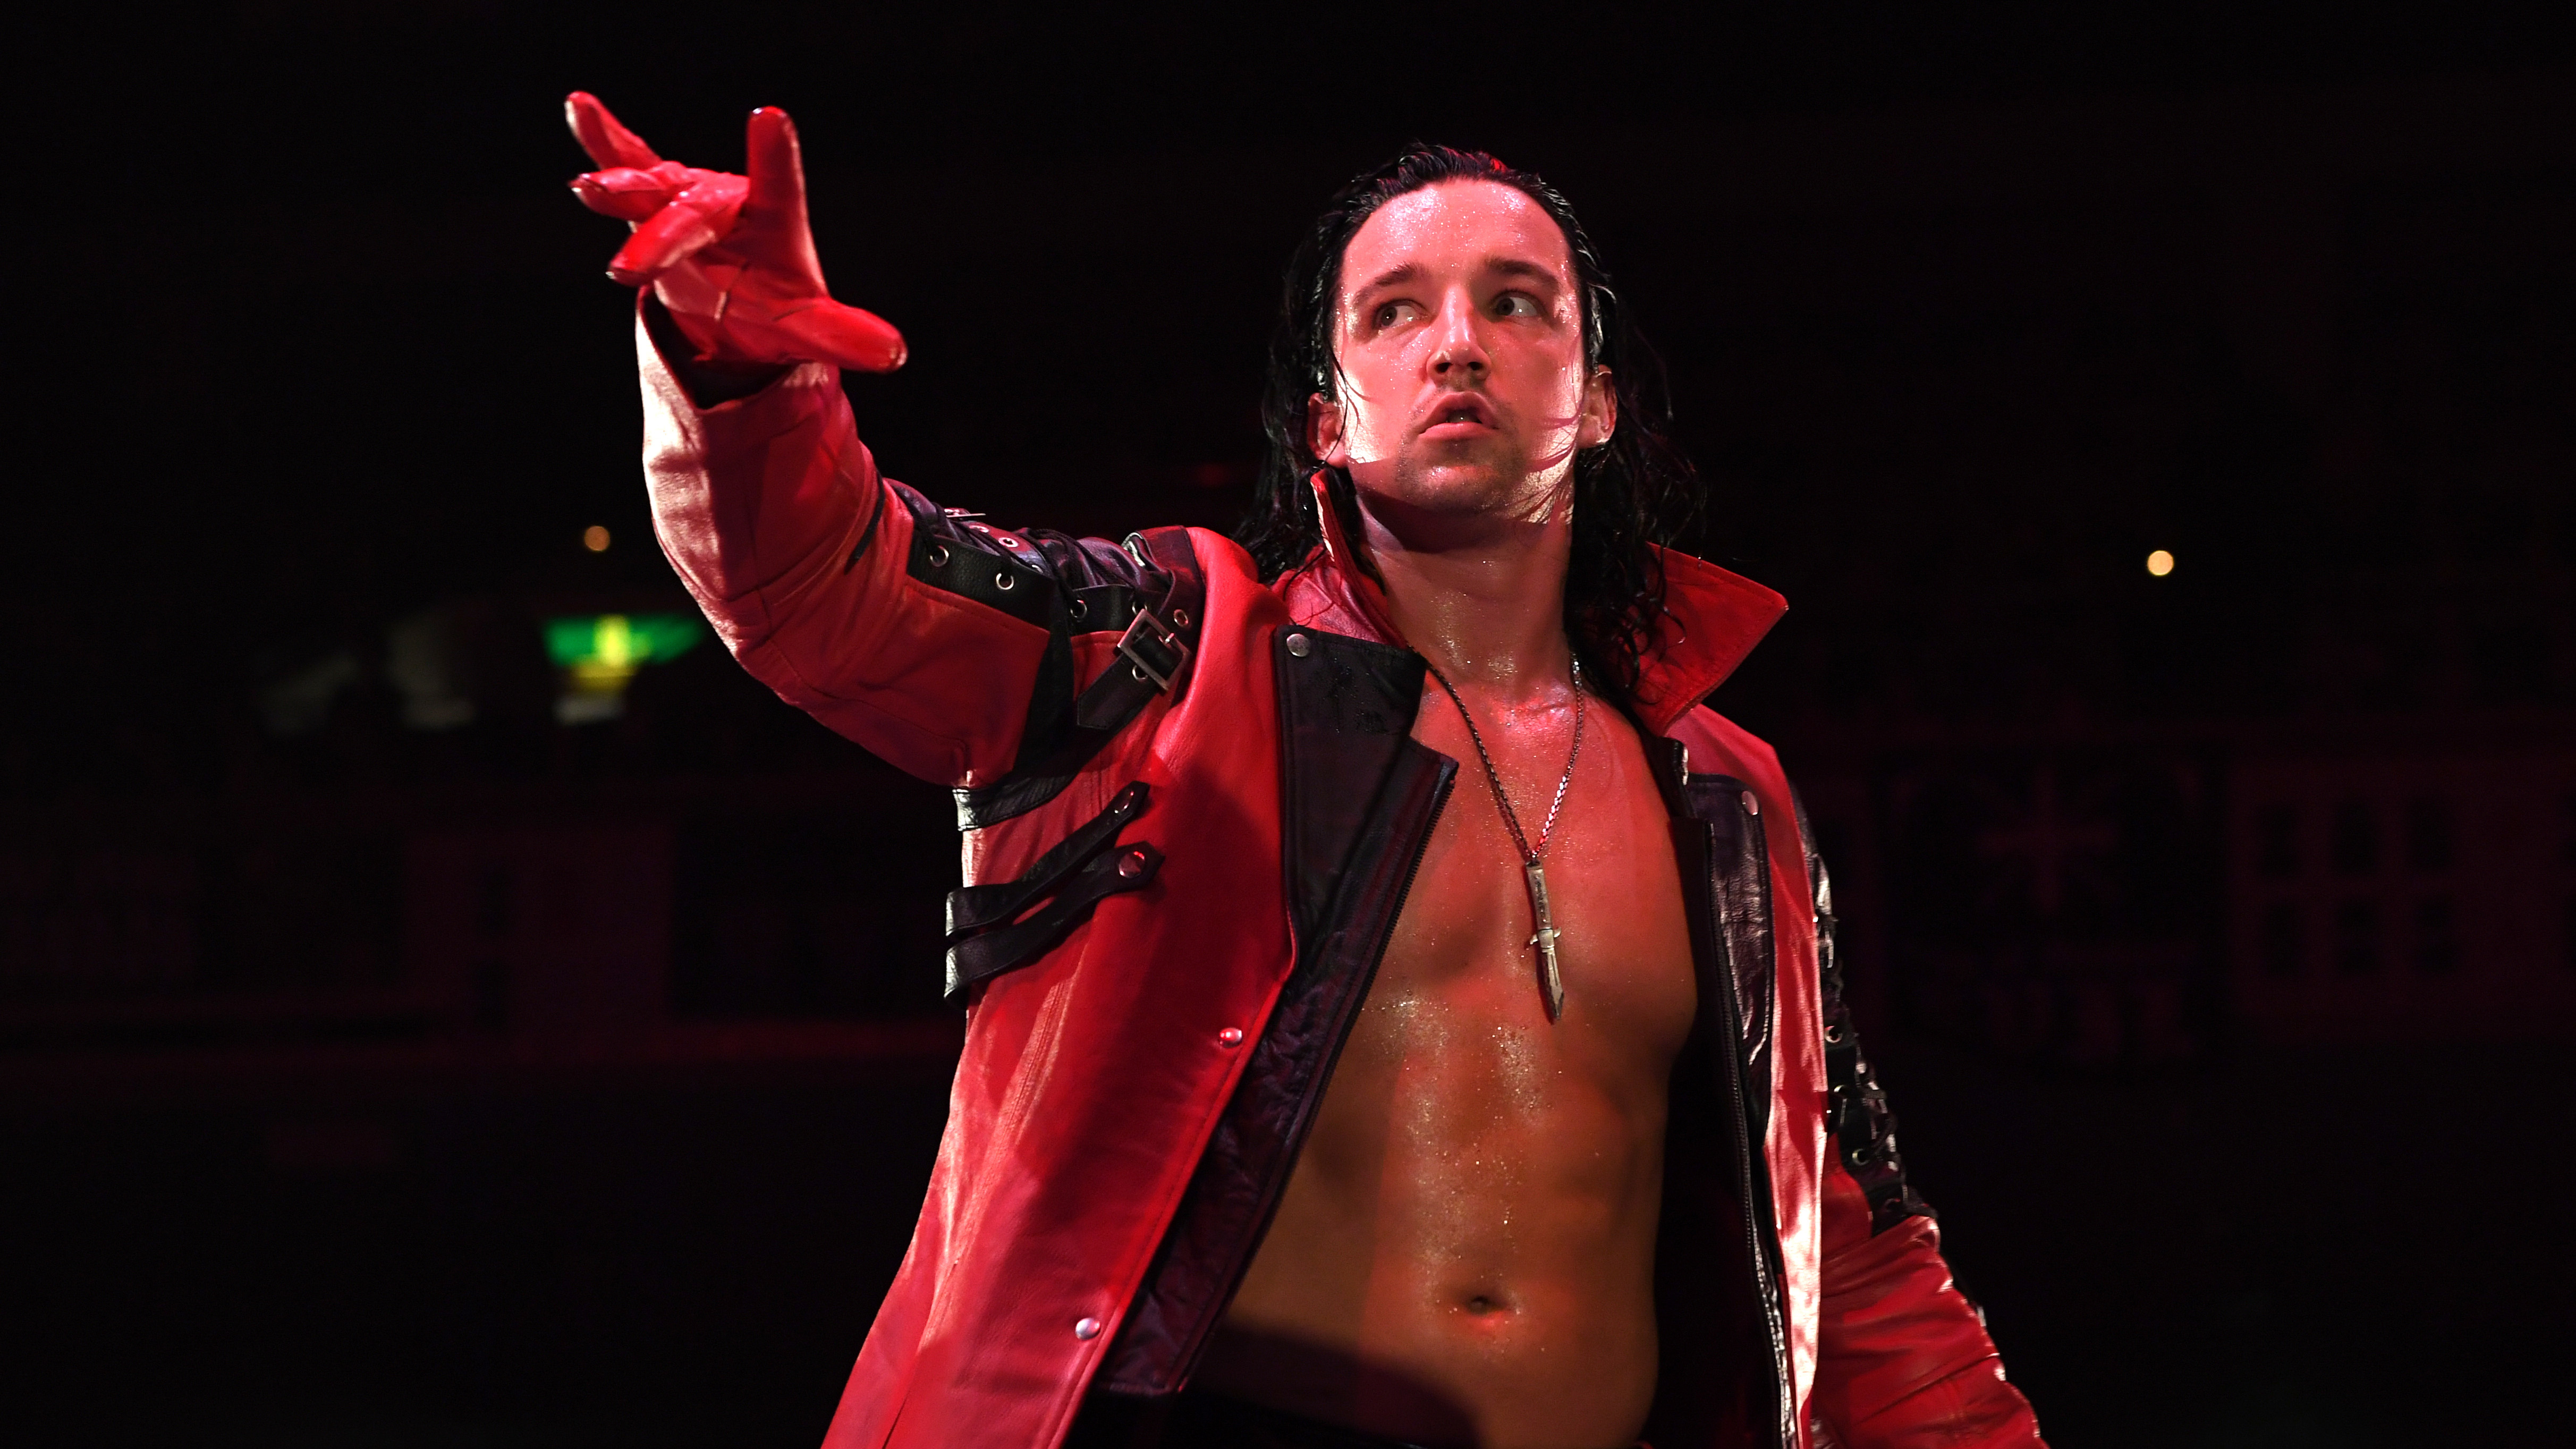 NJPW G1 Supercard: Jay White's IWGP title win sets up New York show